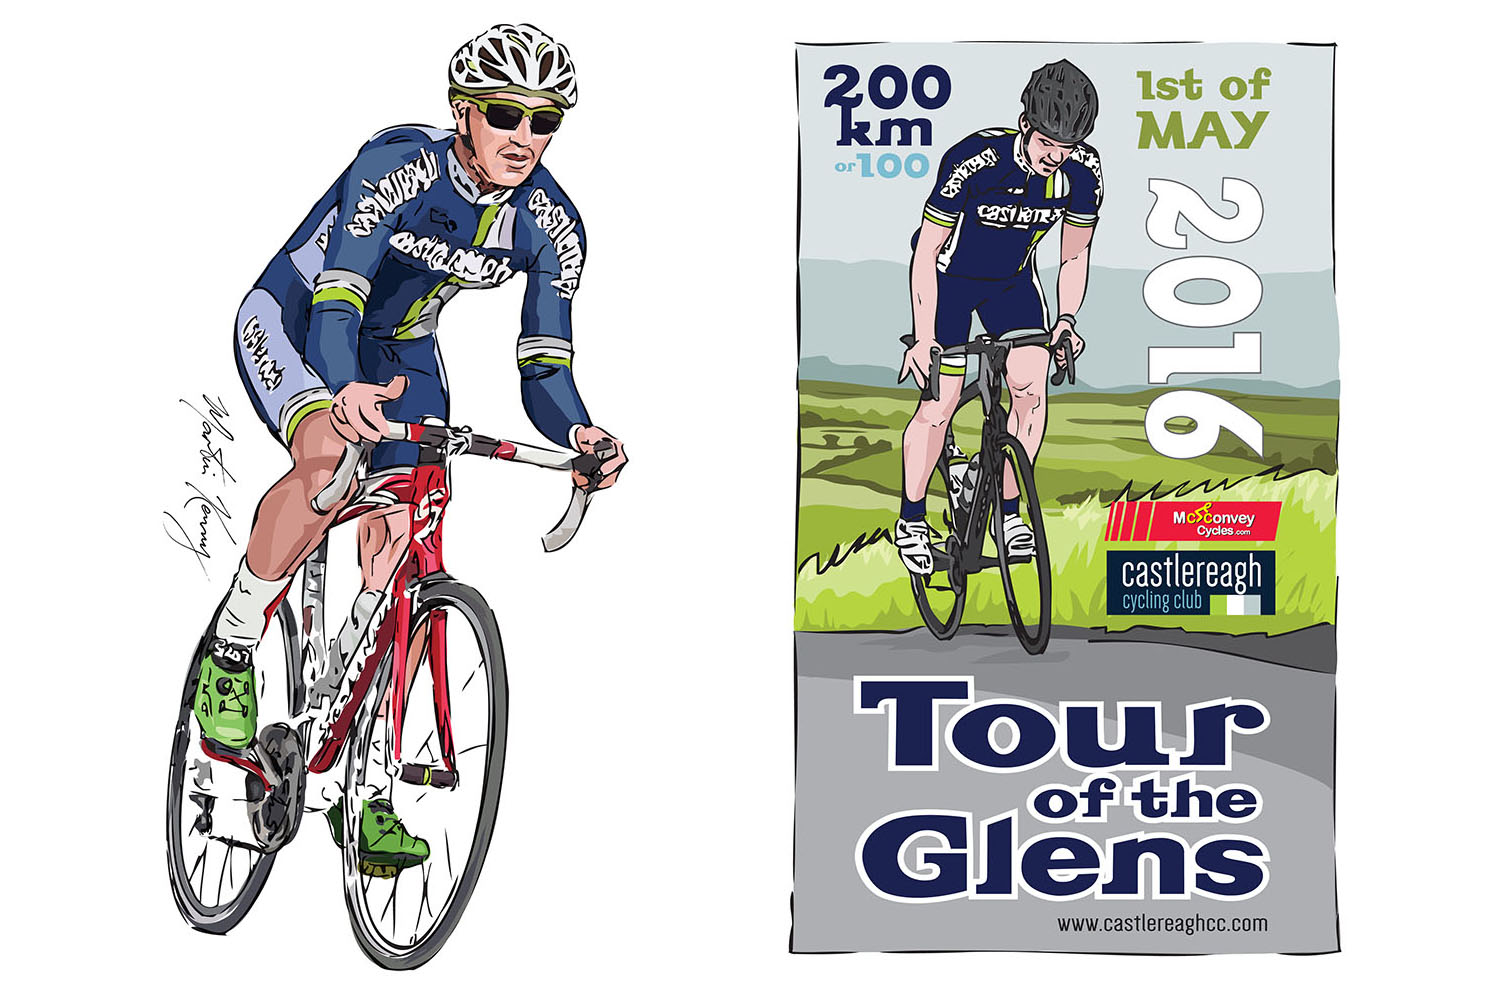 Tour of the Glens